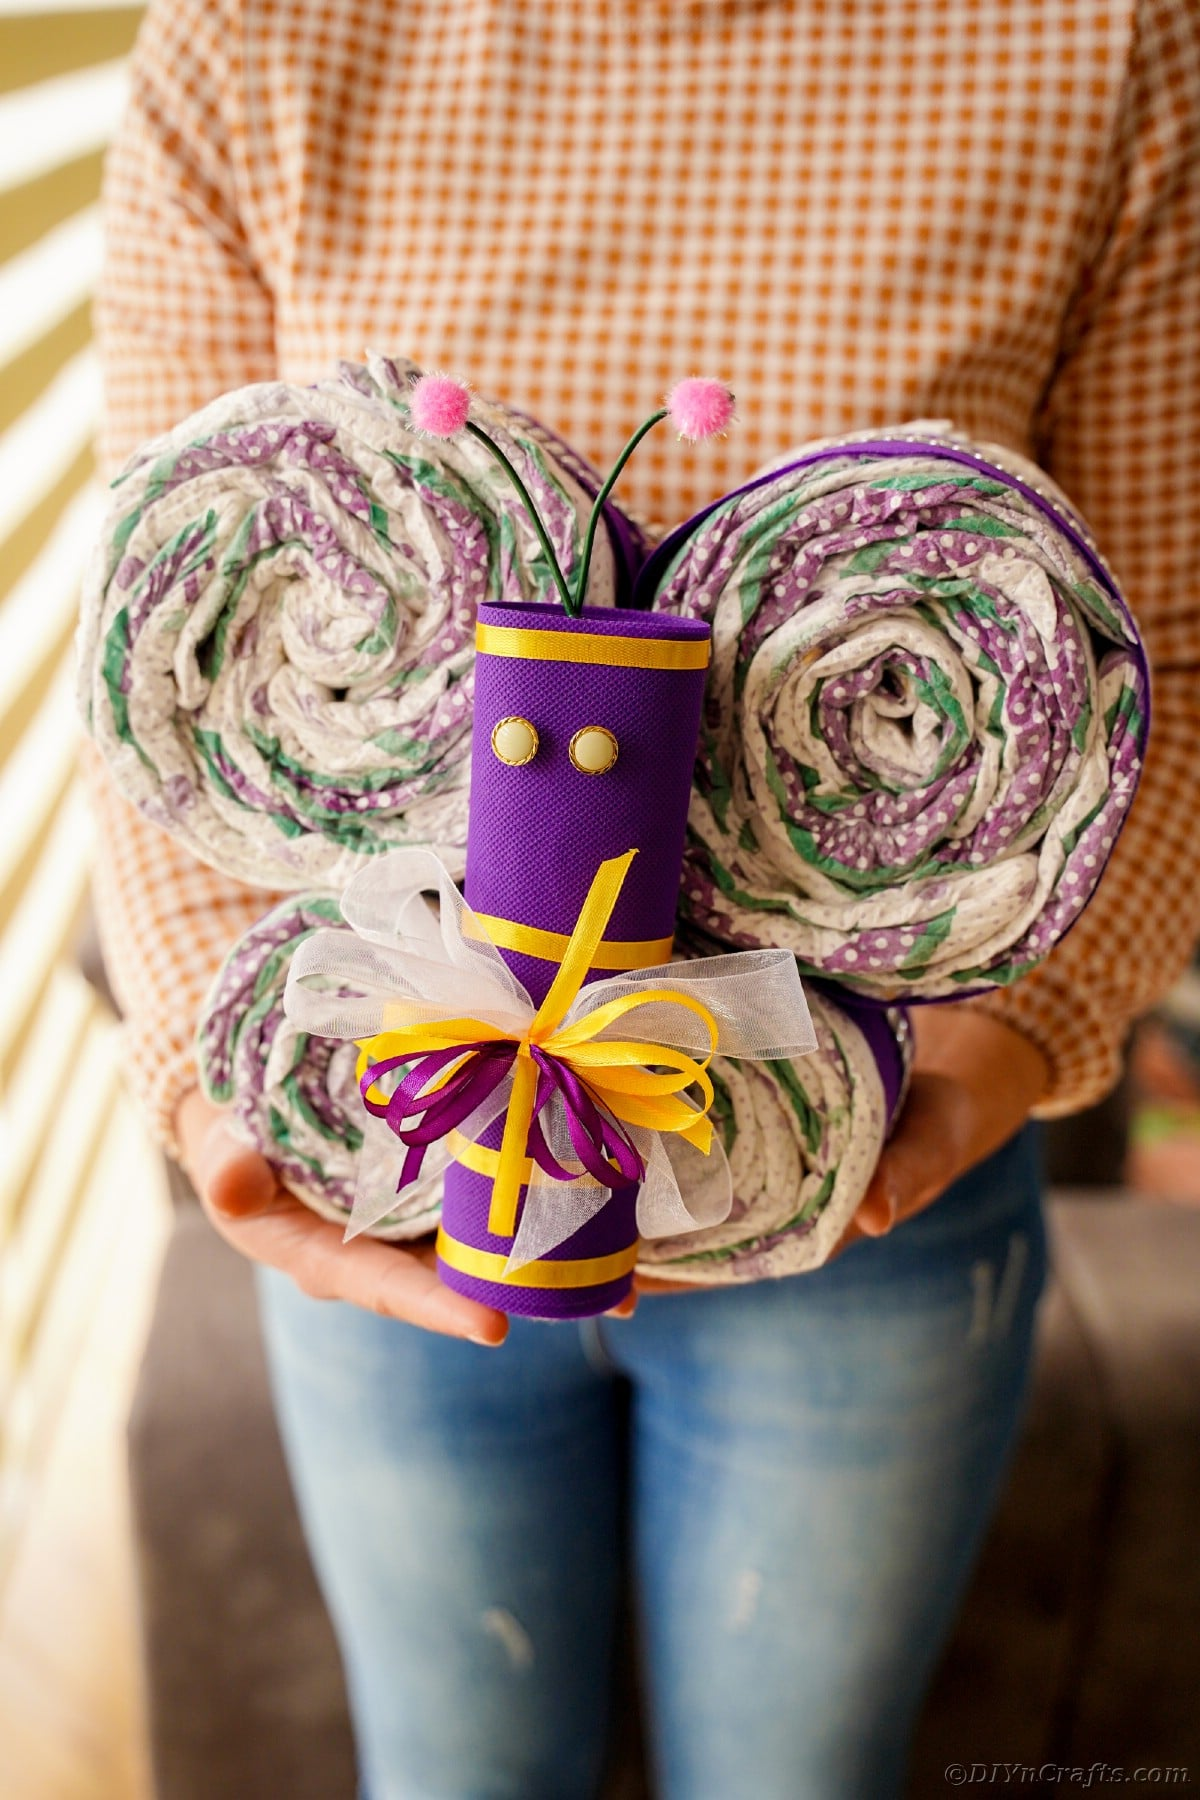 Woman in jeans holding diaper cake butterfly